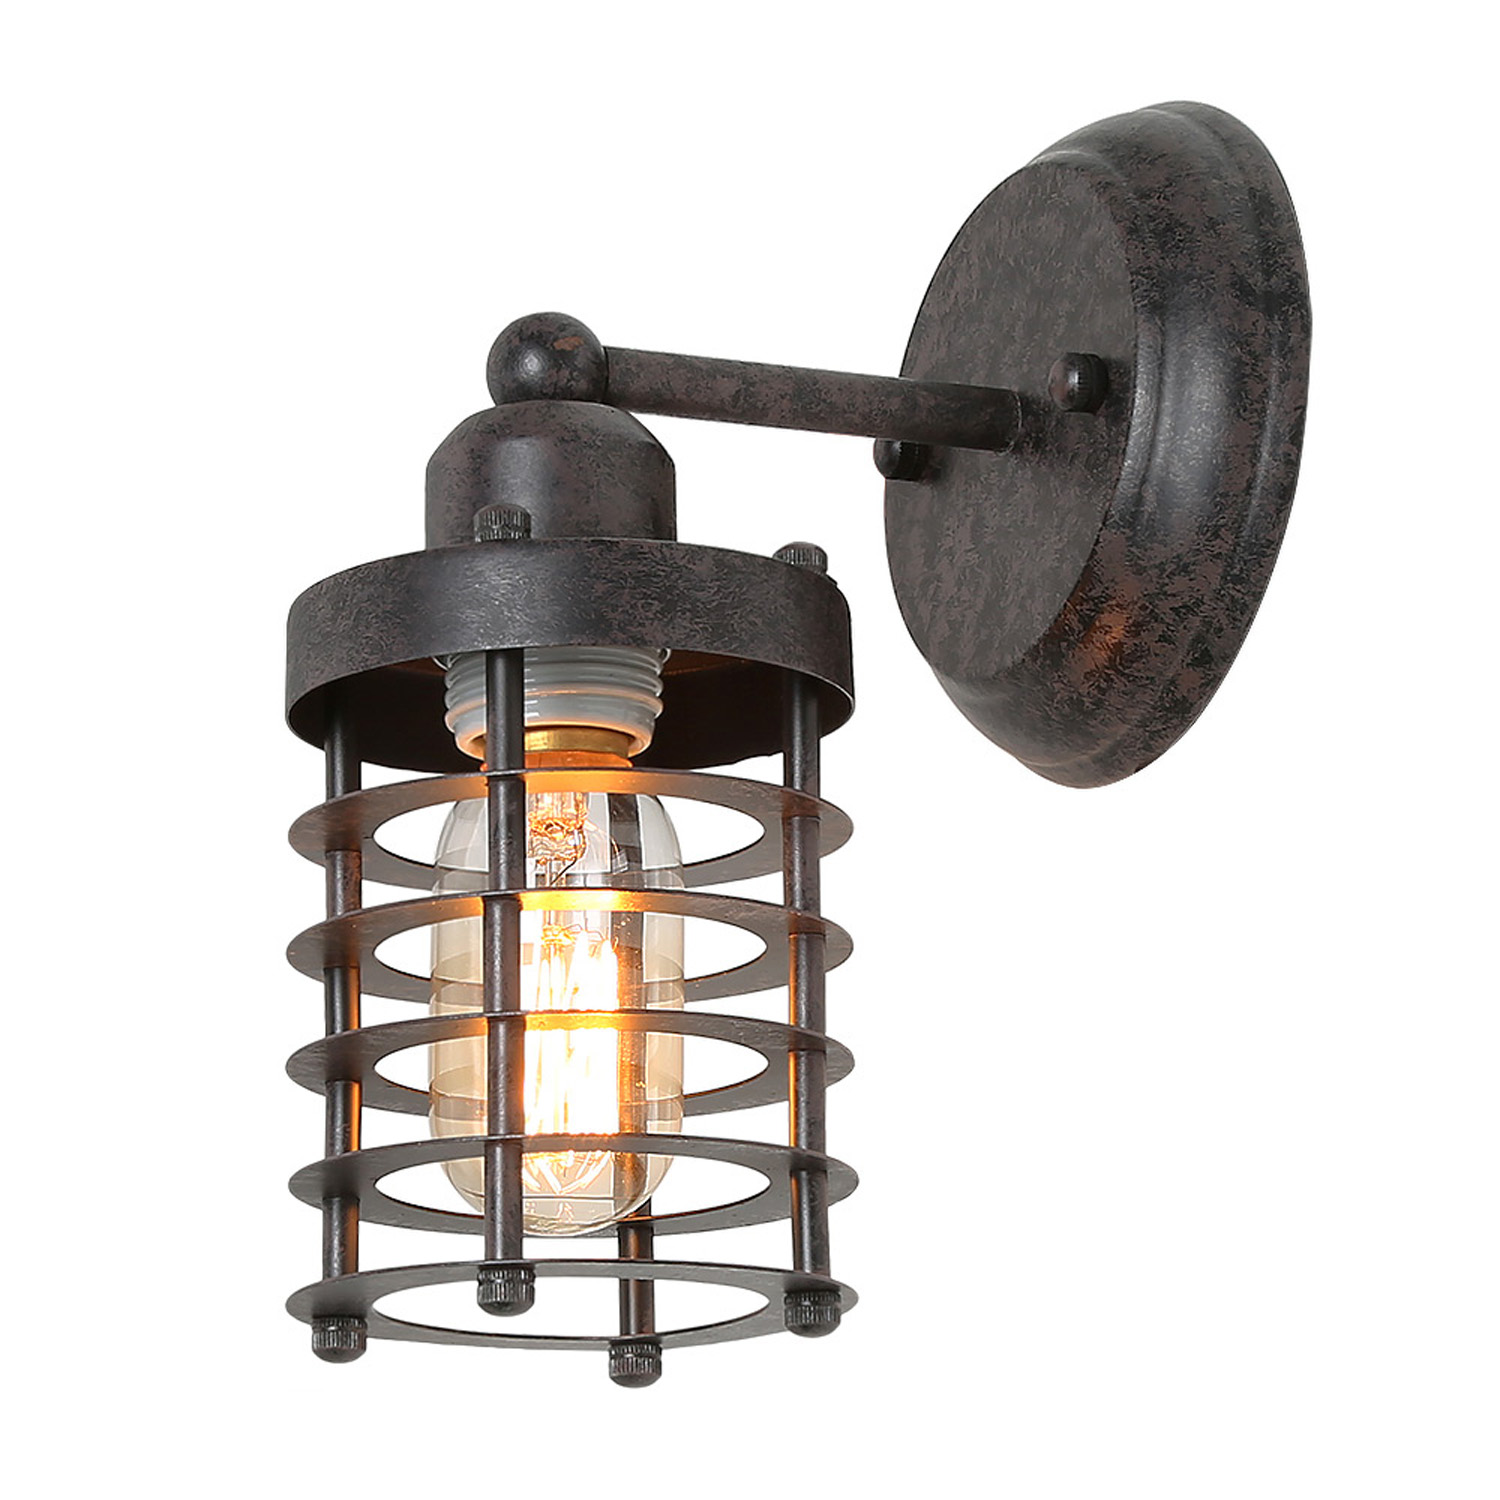 Lnc Swing Arm Wall Lamp For Bedroom Industial Vintage Rustic Wall Mount Lamp Wall Lamp Industrial Mini Cage Sconce Indoor Wall Light Fixture Walmart Com Walmart Com